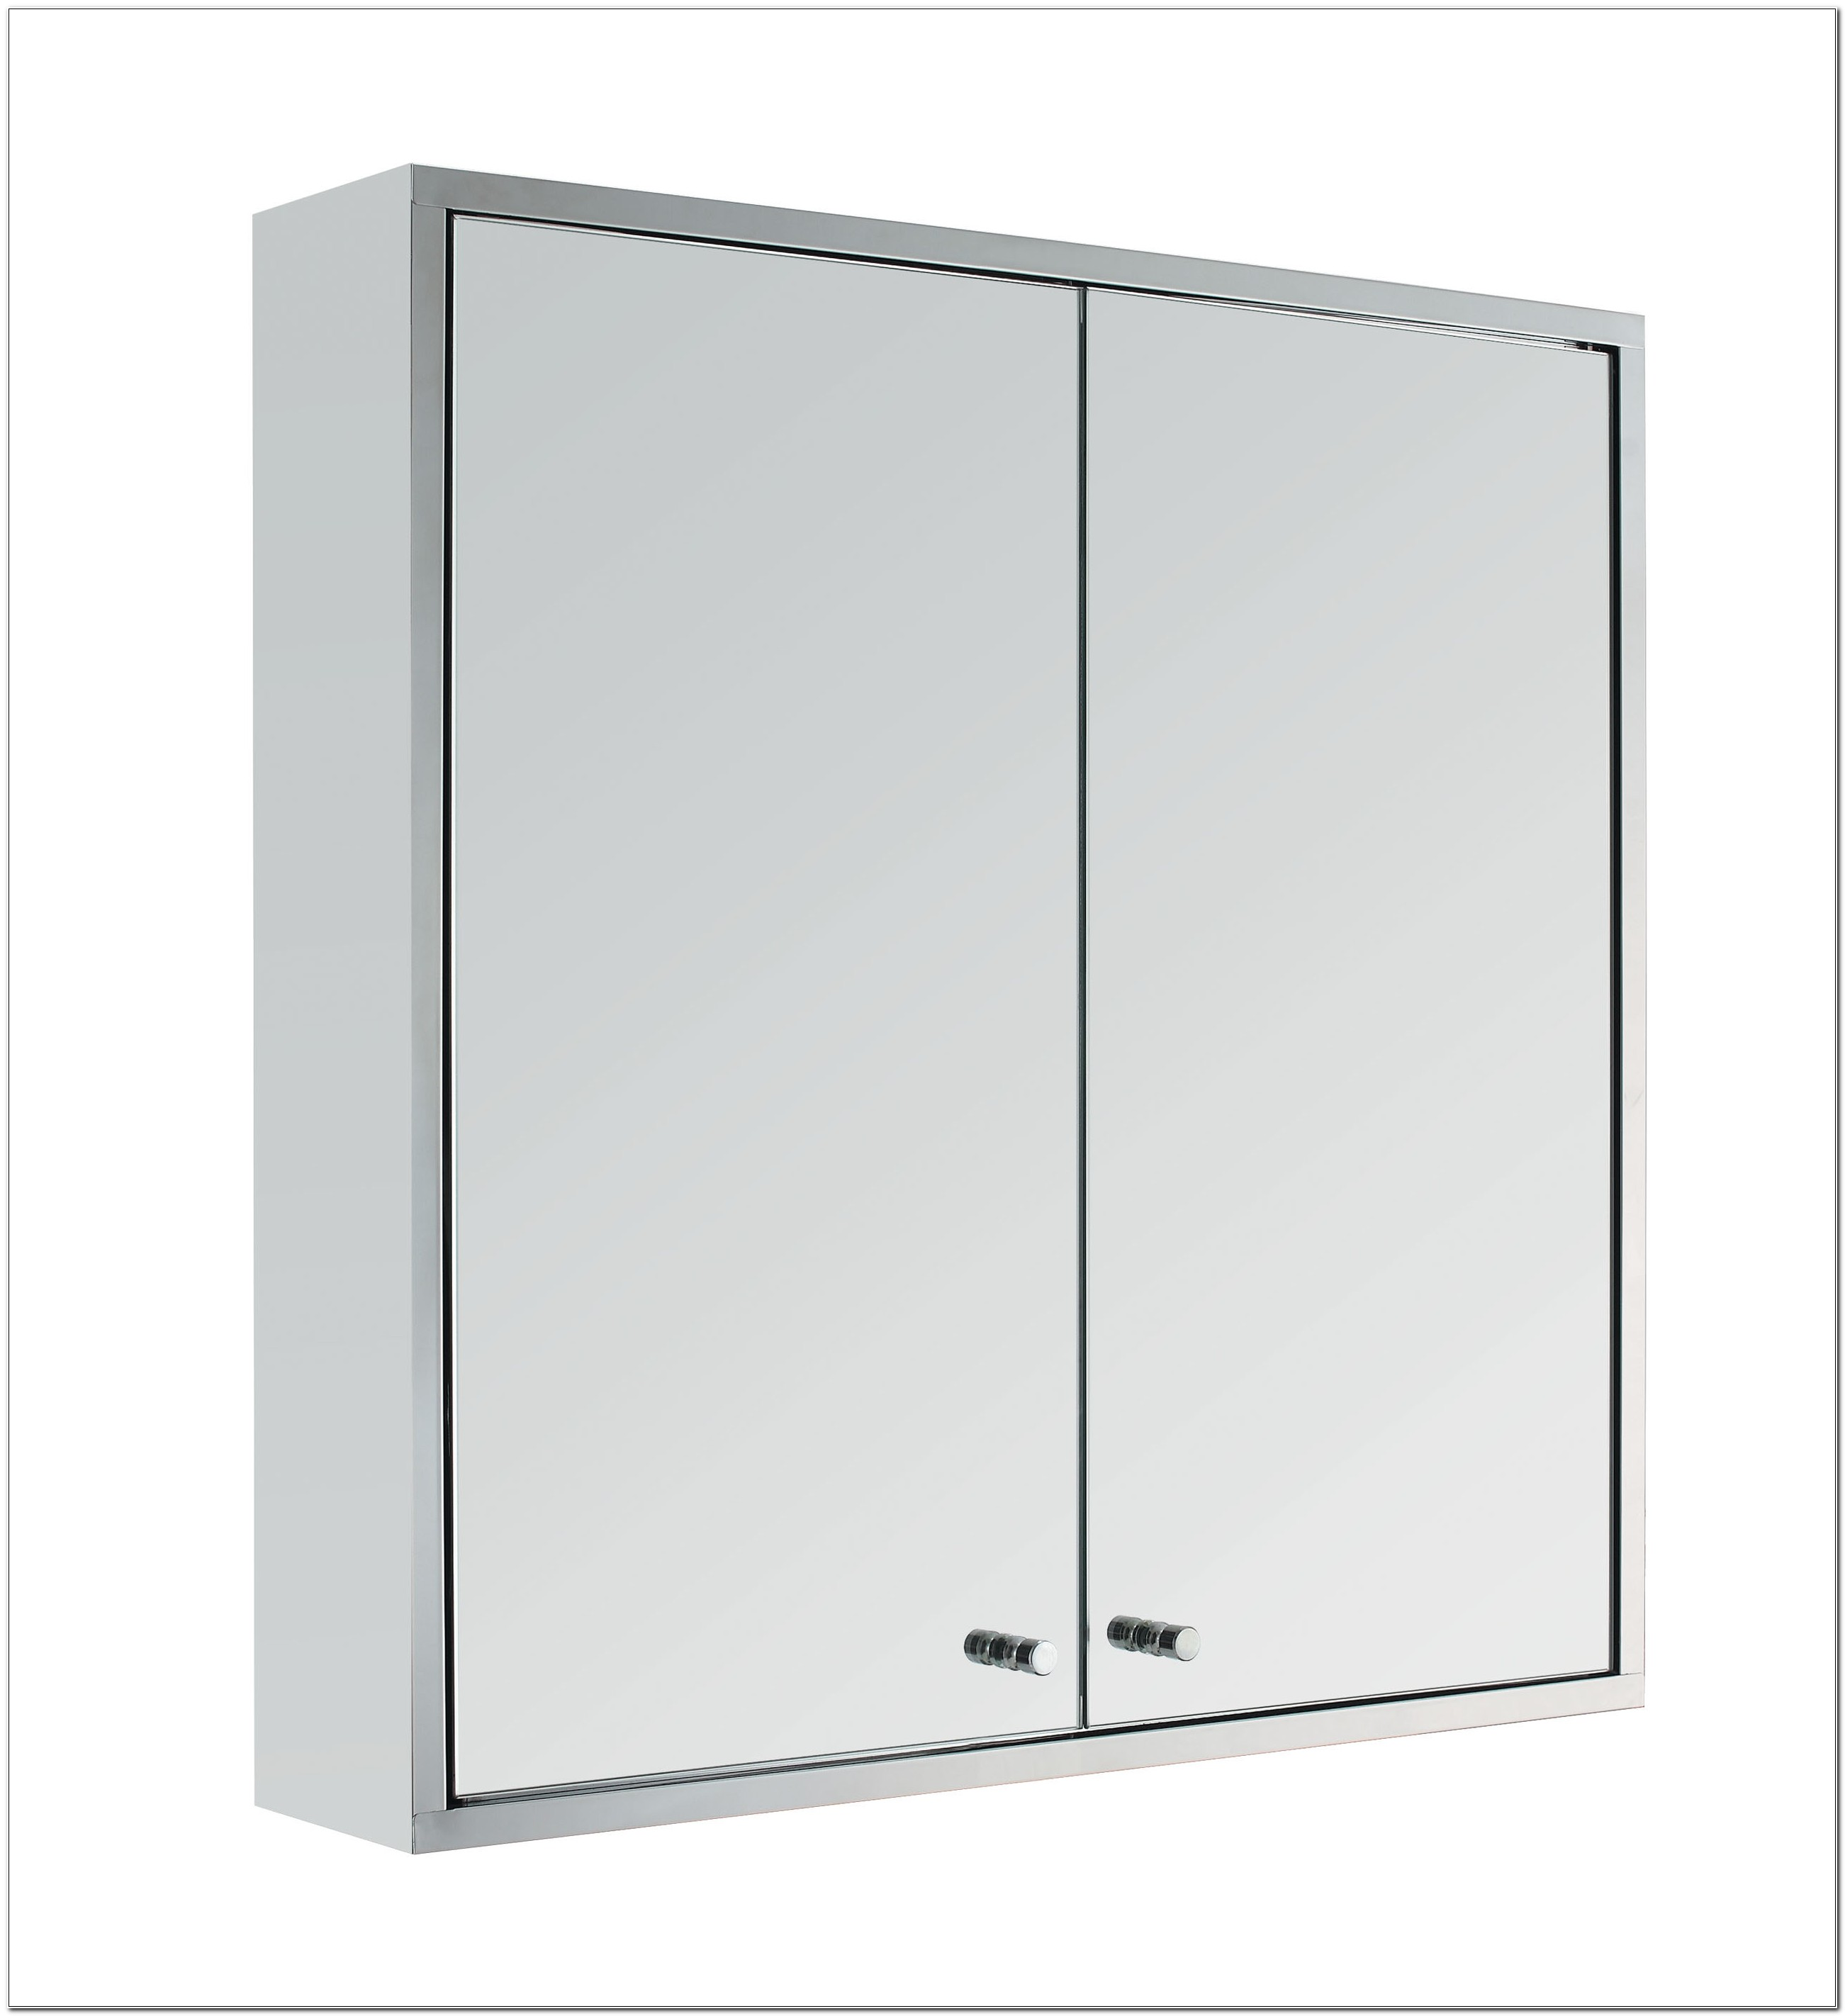 Stainless Steel Bathroom Cabinets Uk